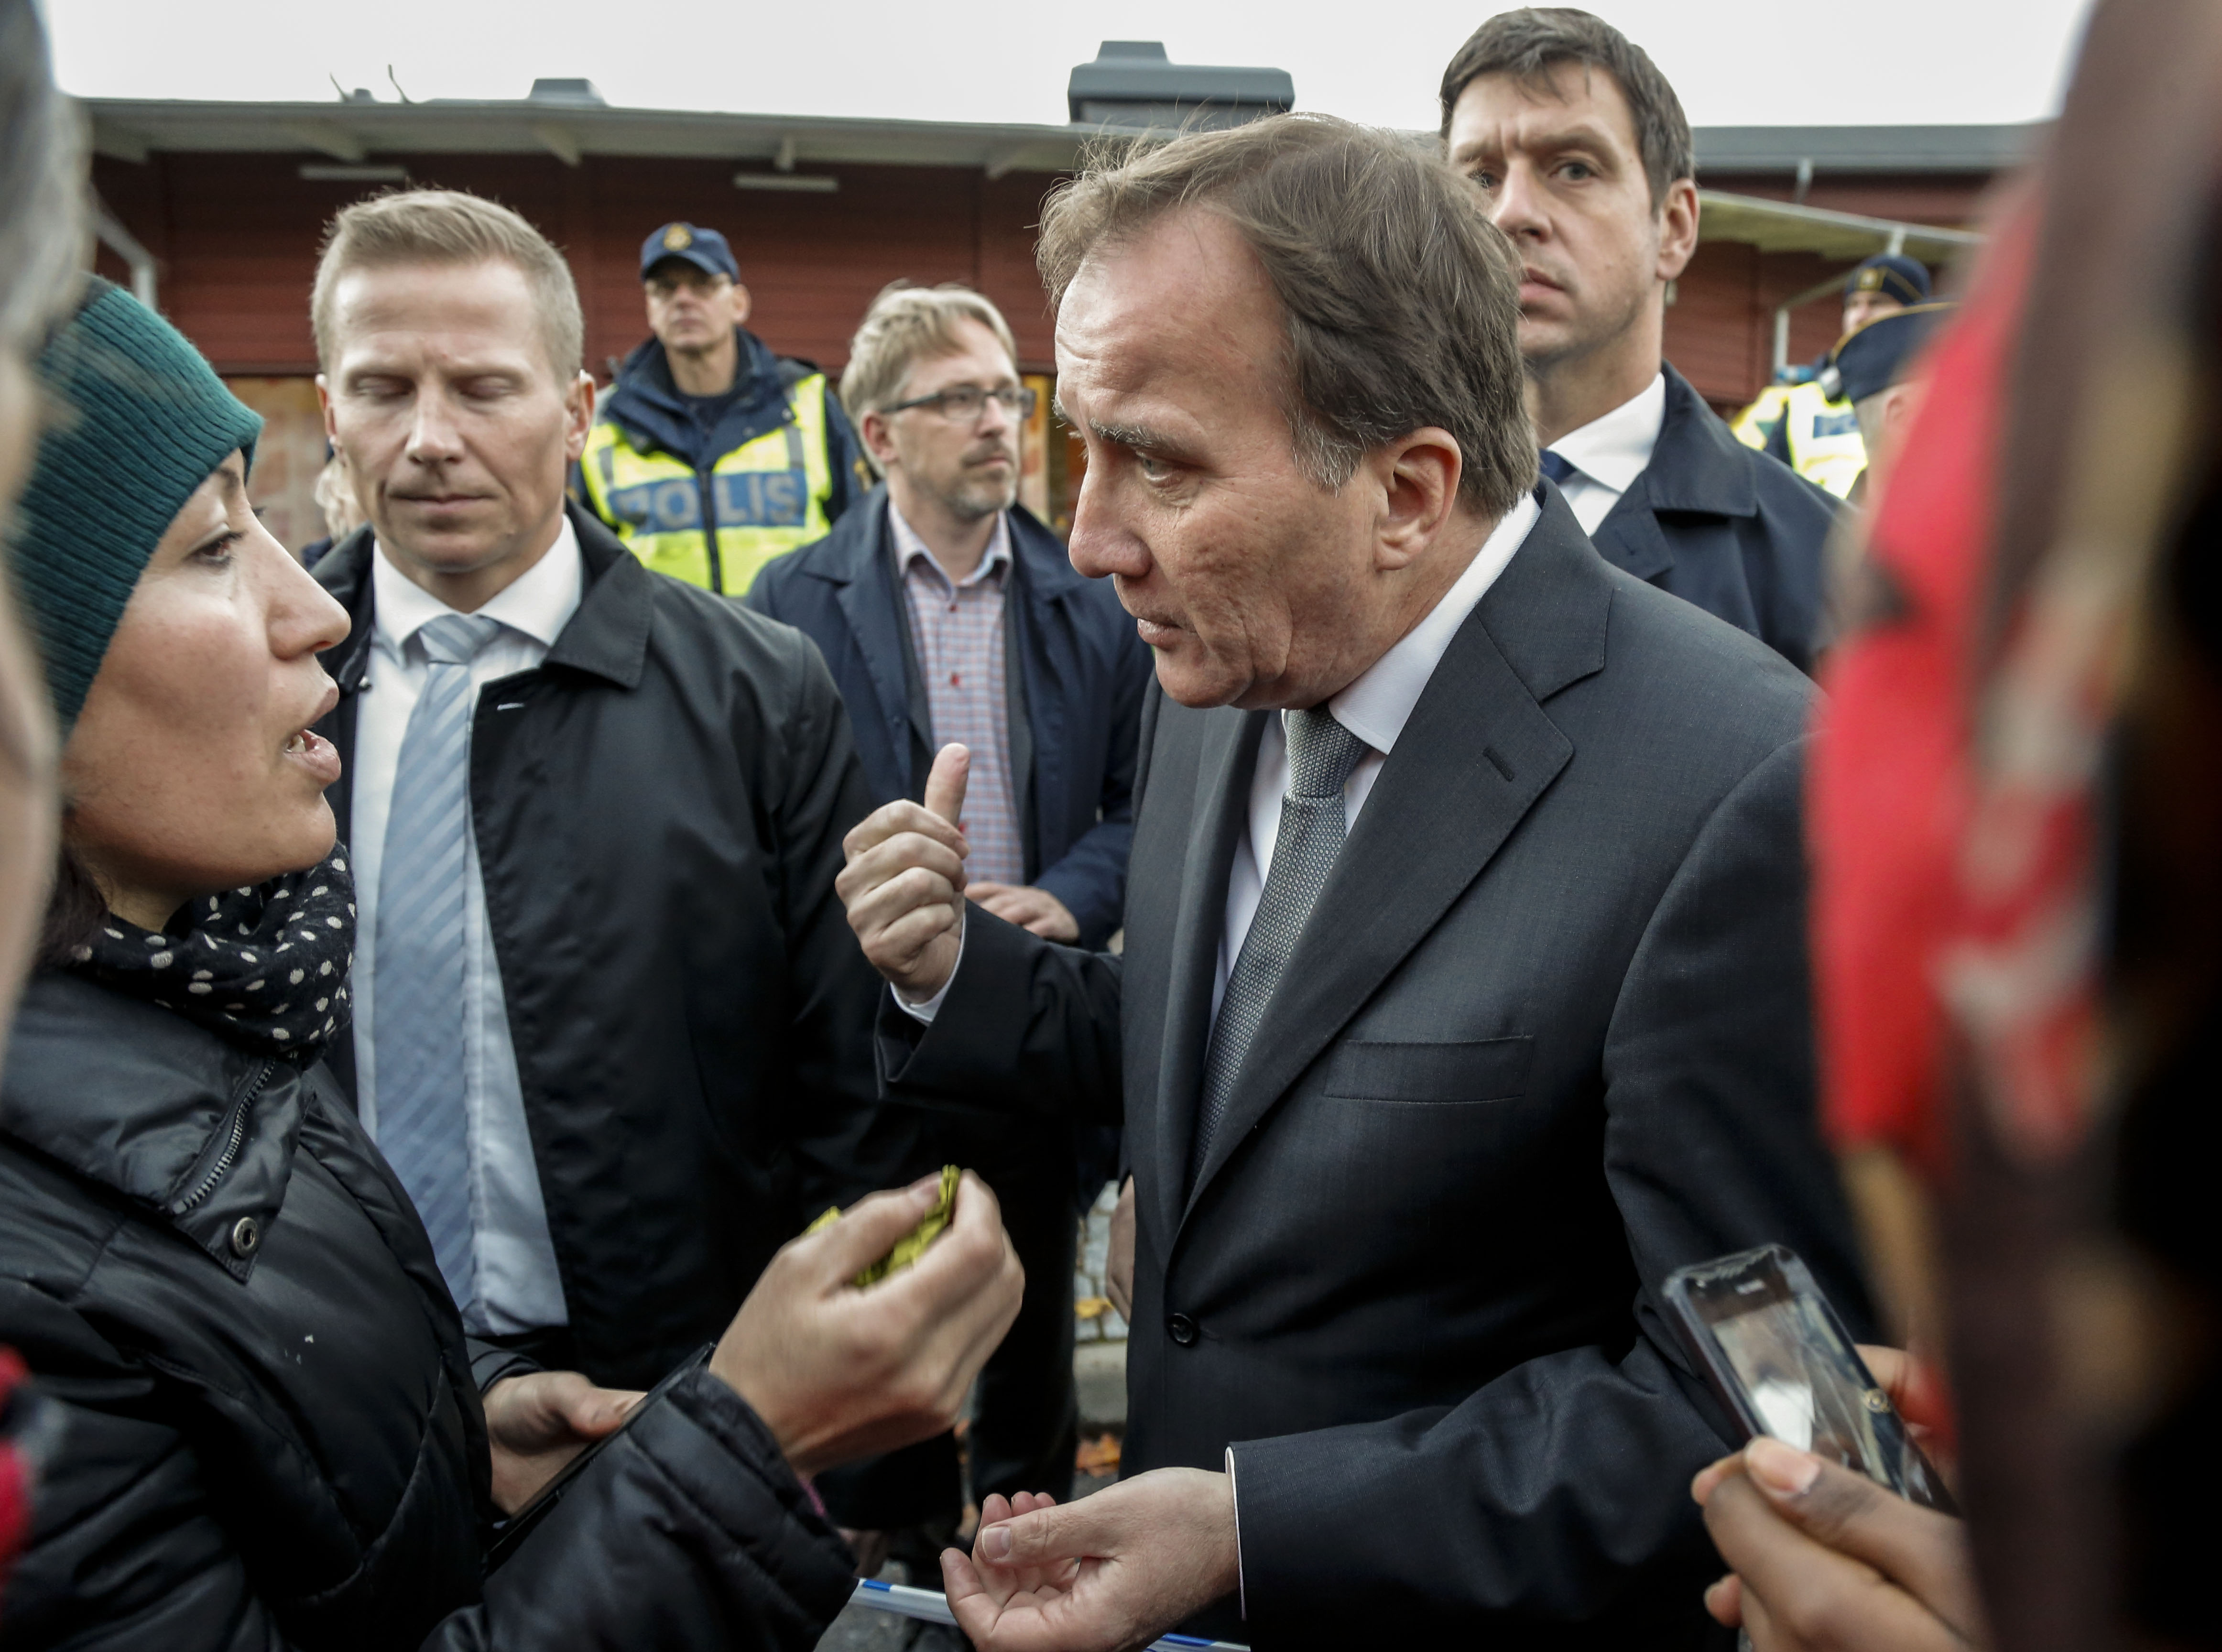 Prime Minister Stefan Lofven, right, talks to local people near the school Thursday afternoon where a masked man wielding what looked like a sword stabbed four people Thursday Oct. 22, 2015, in Trollhattan, Southern Sweden.